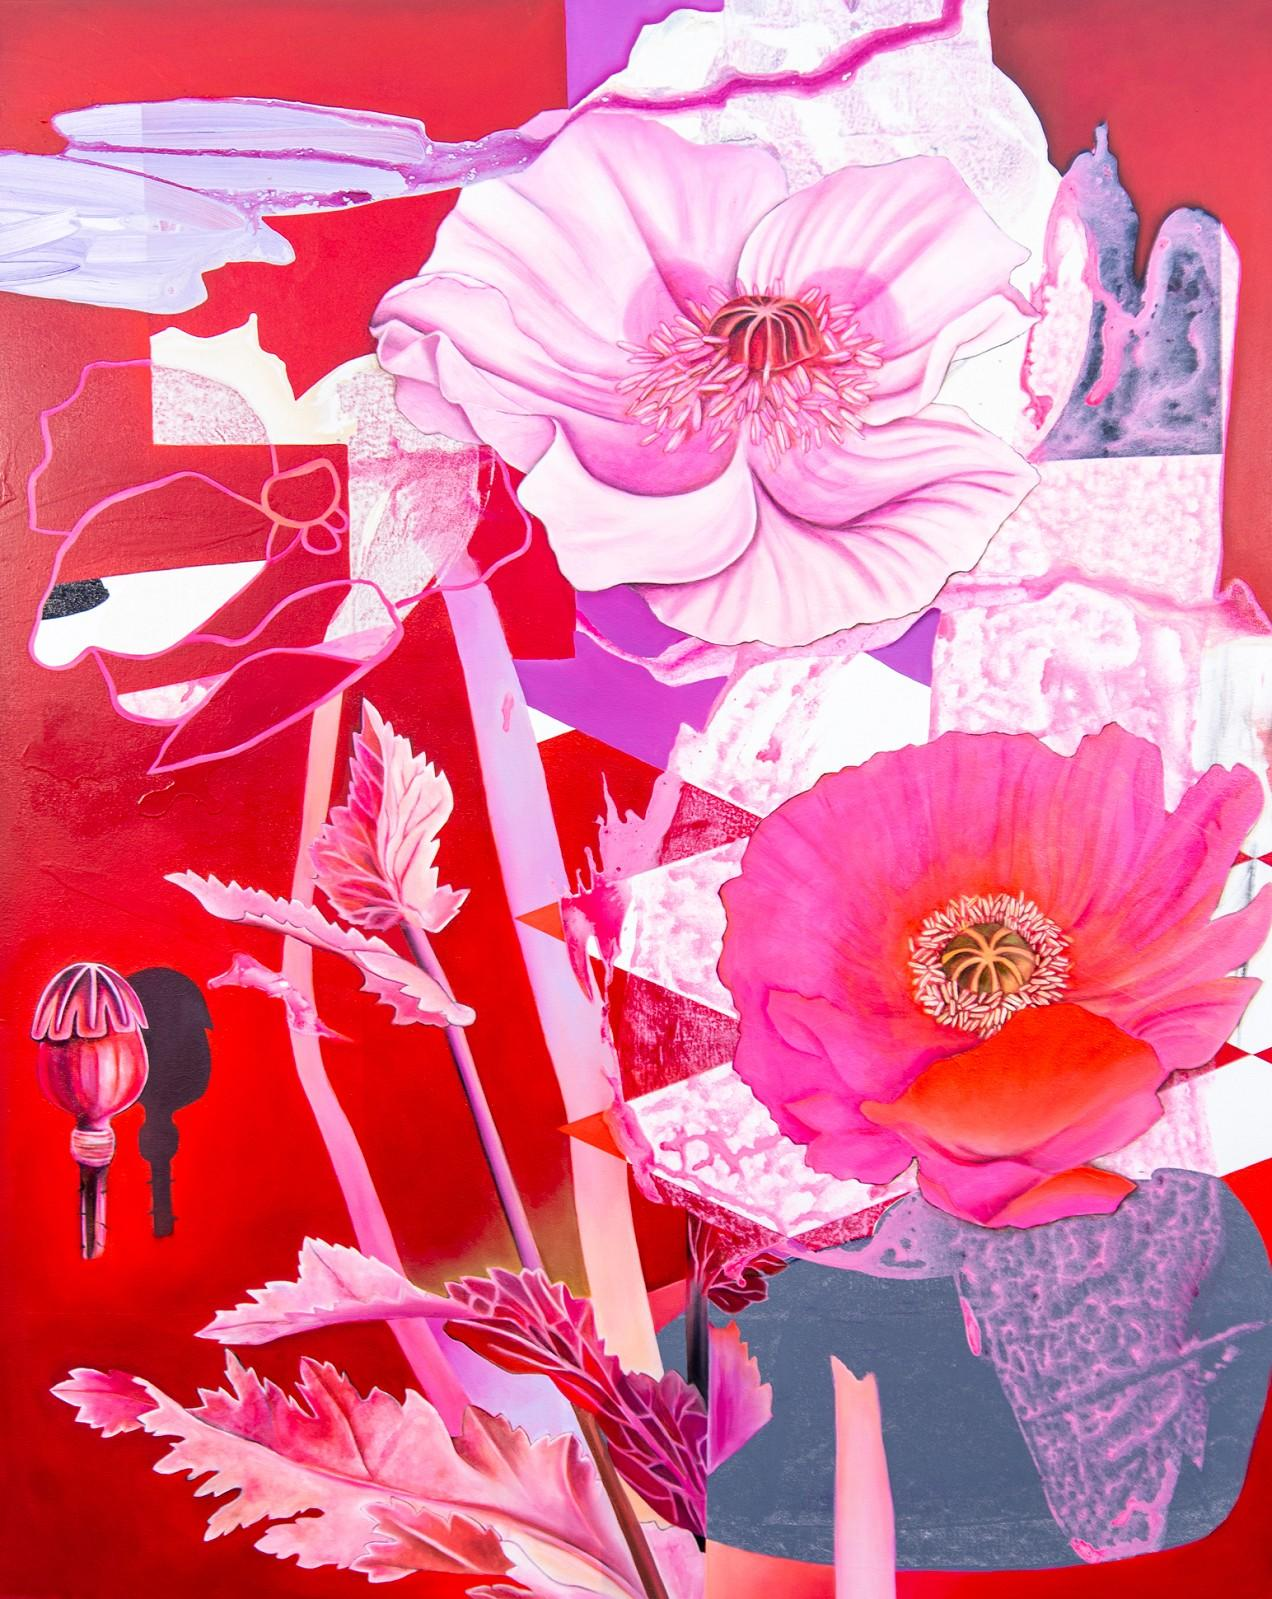 Dream Flower - lively, fuscia, overlapping botanicals, acrylic, oil on canvas